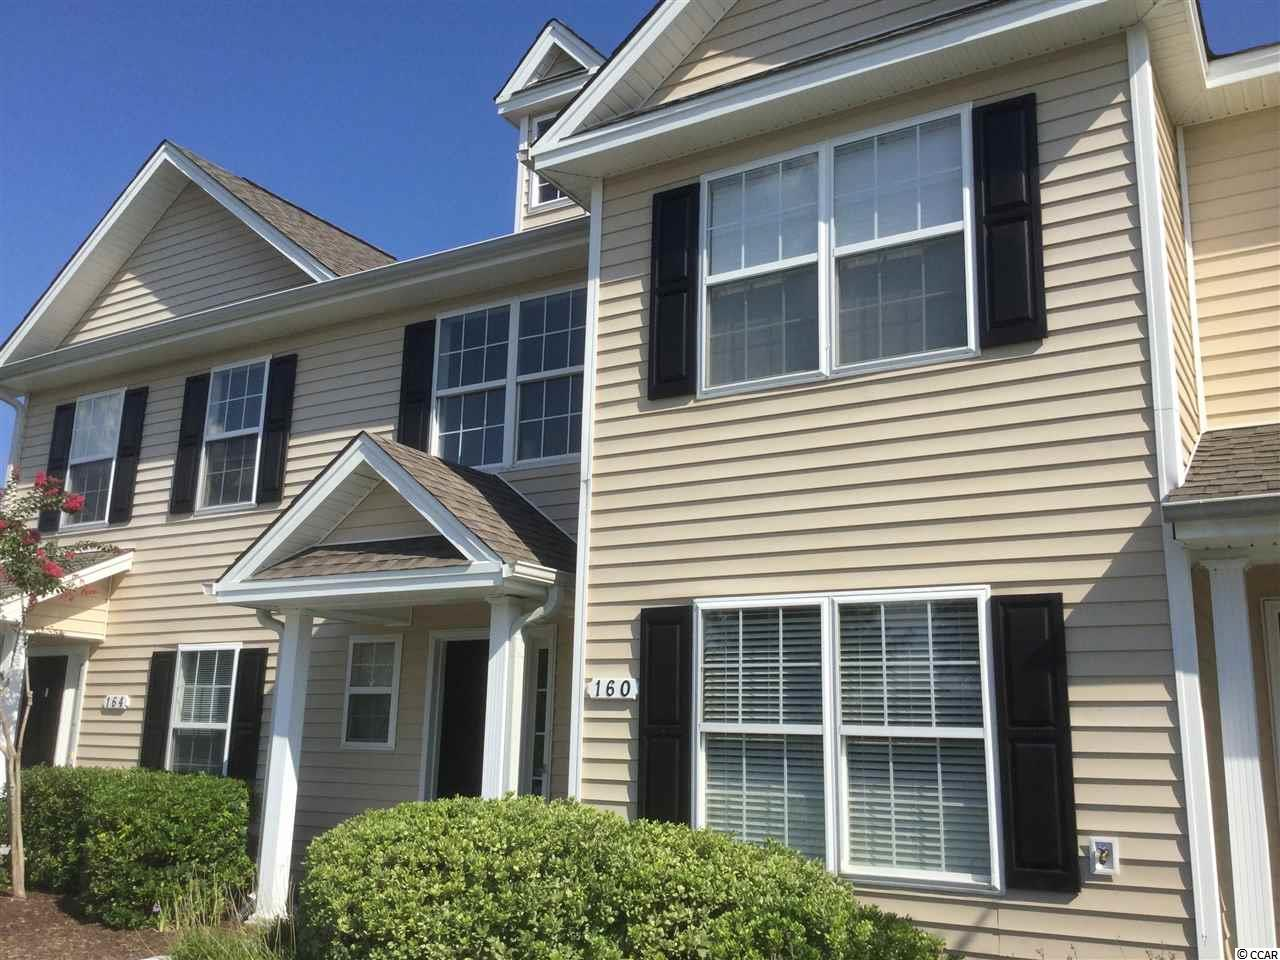 The Glens condo for sale in Murrells Inlet, SC